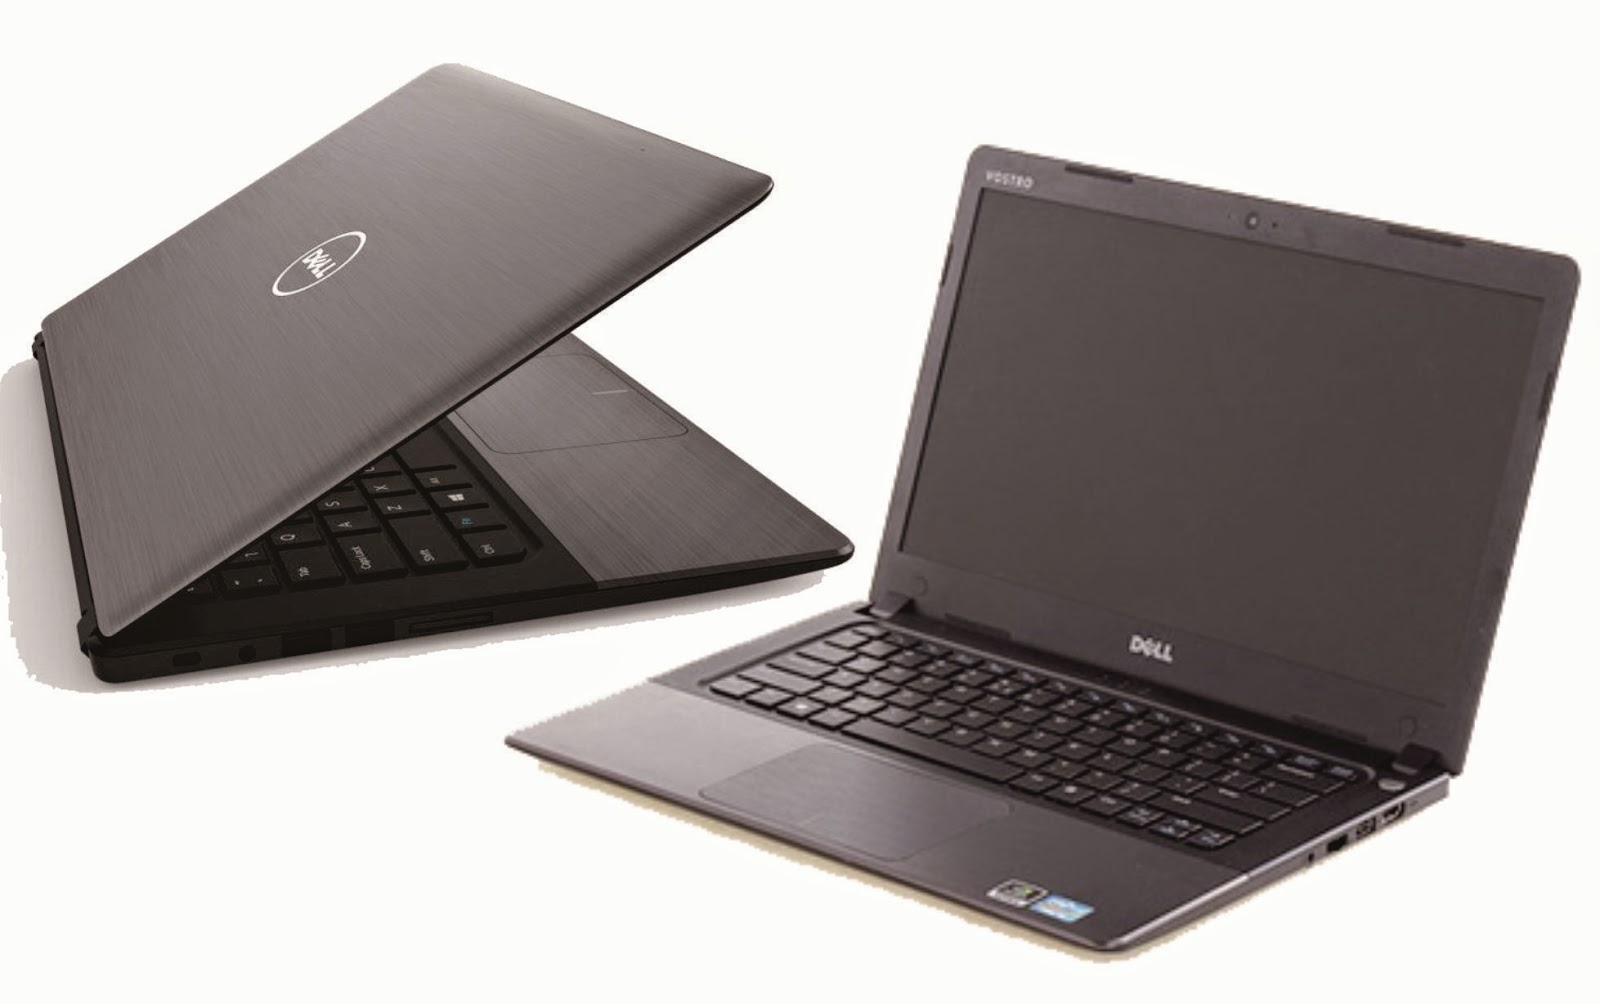 Dell Drivers For Windows 8.1 Pro 64 Bit Download